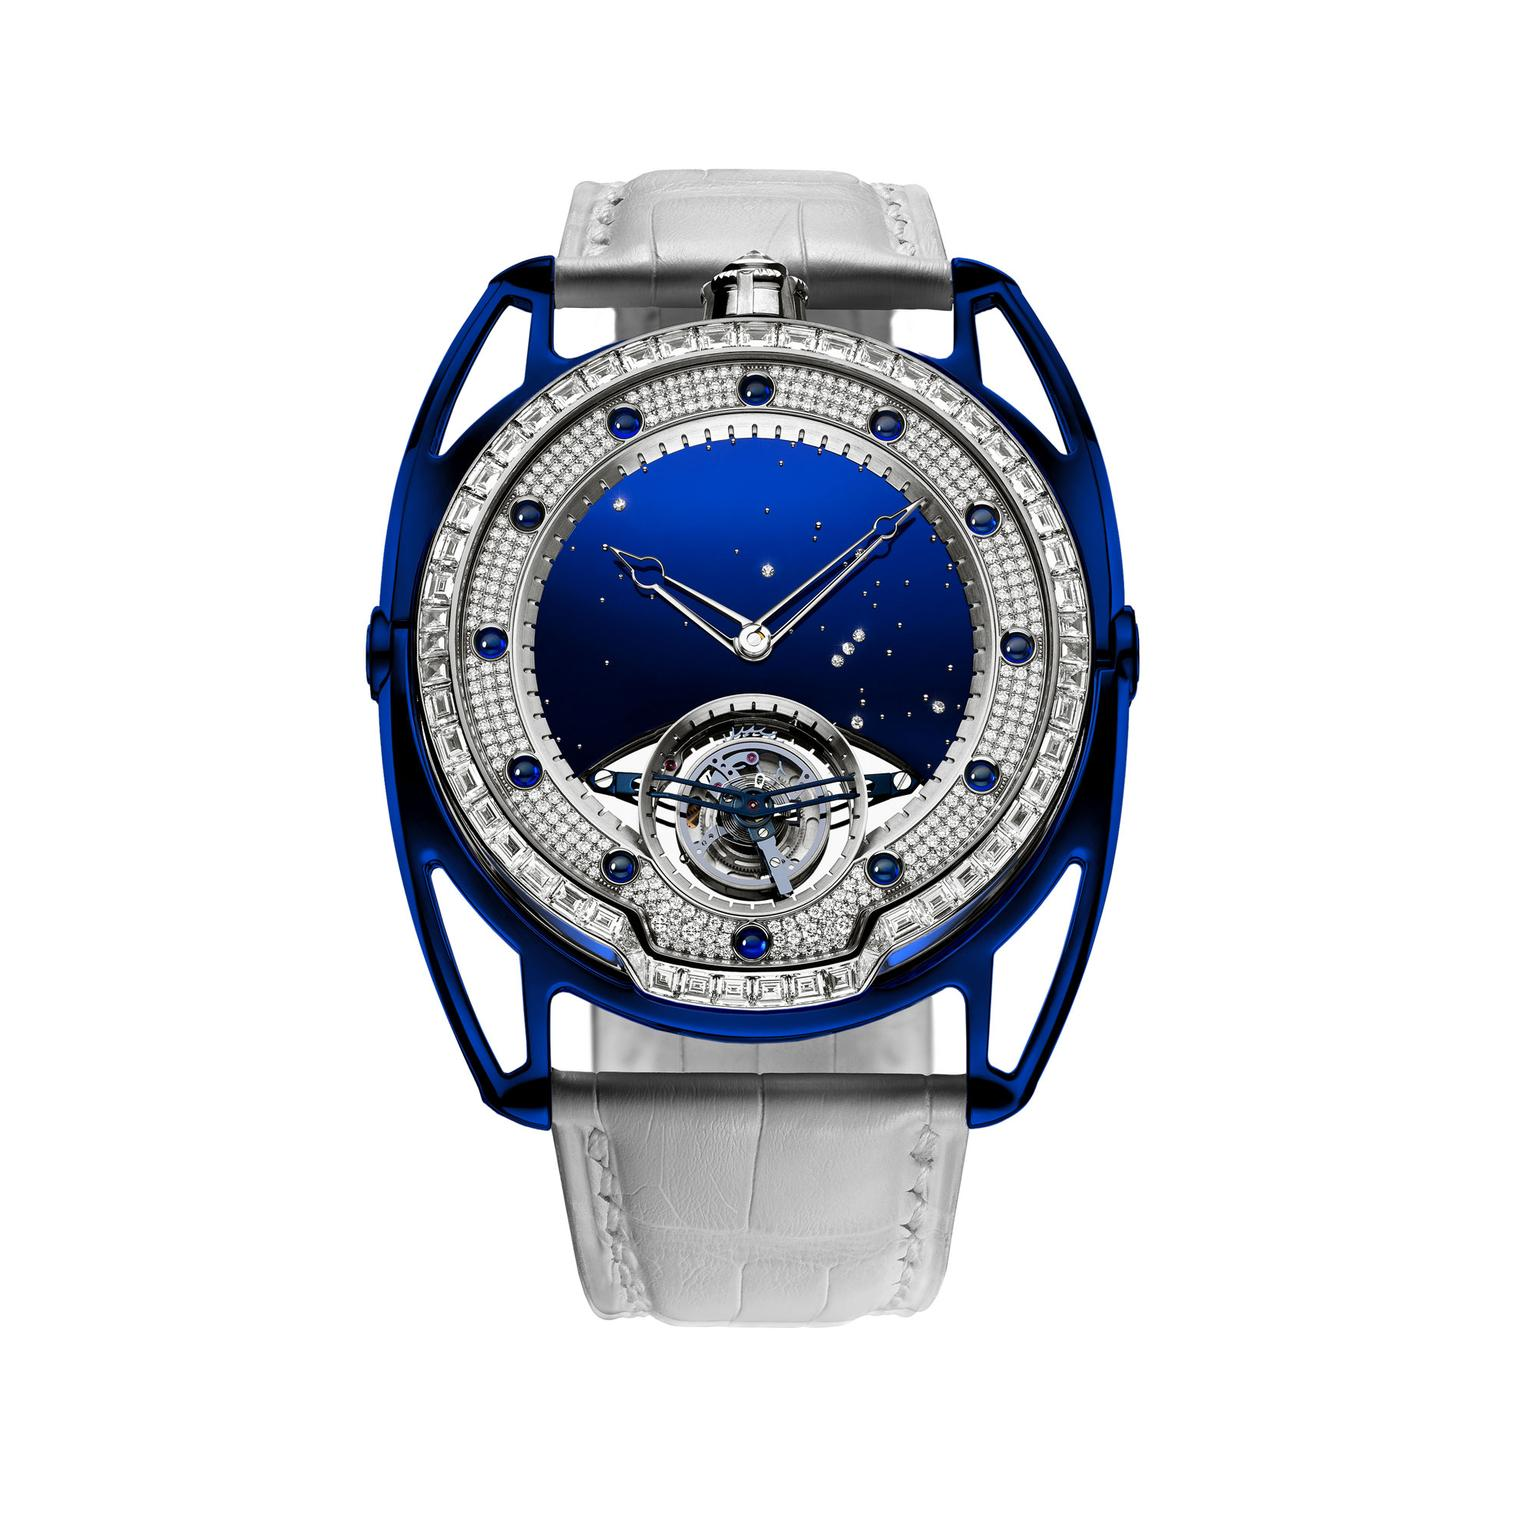 DeBethune DB28T Jewellery watch